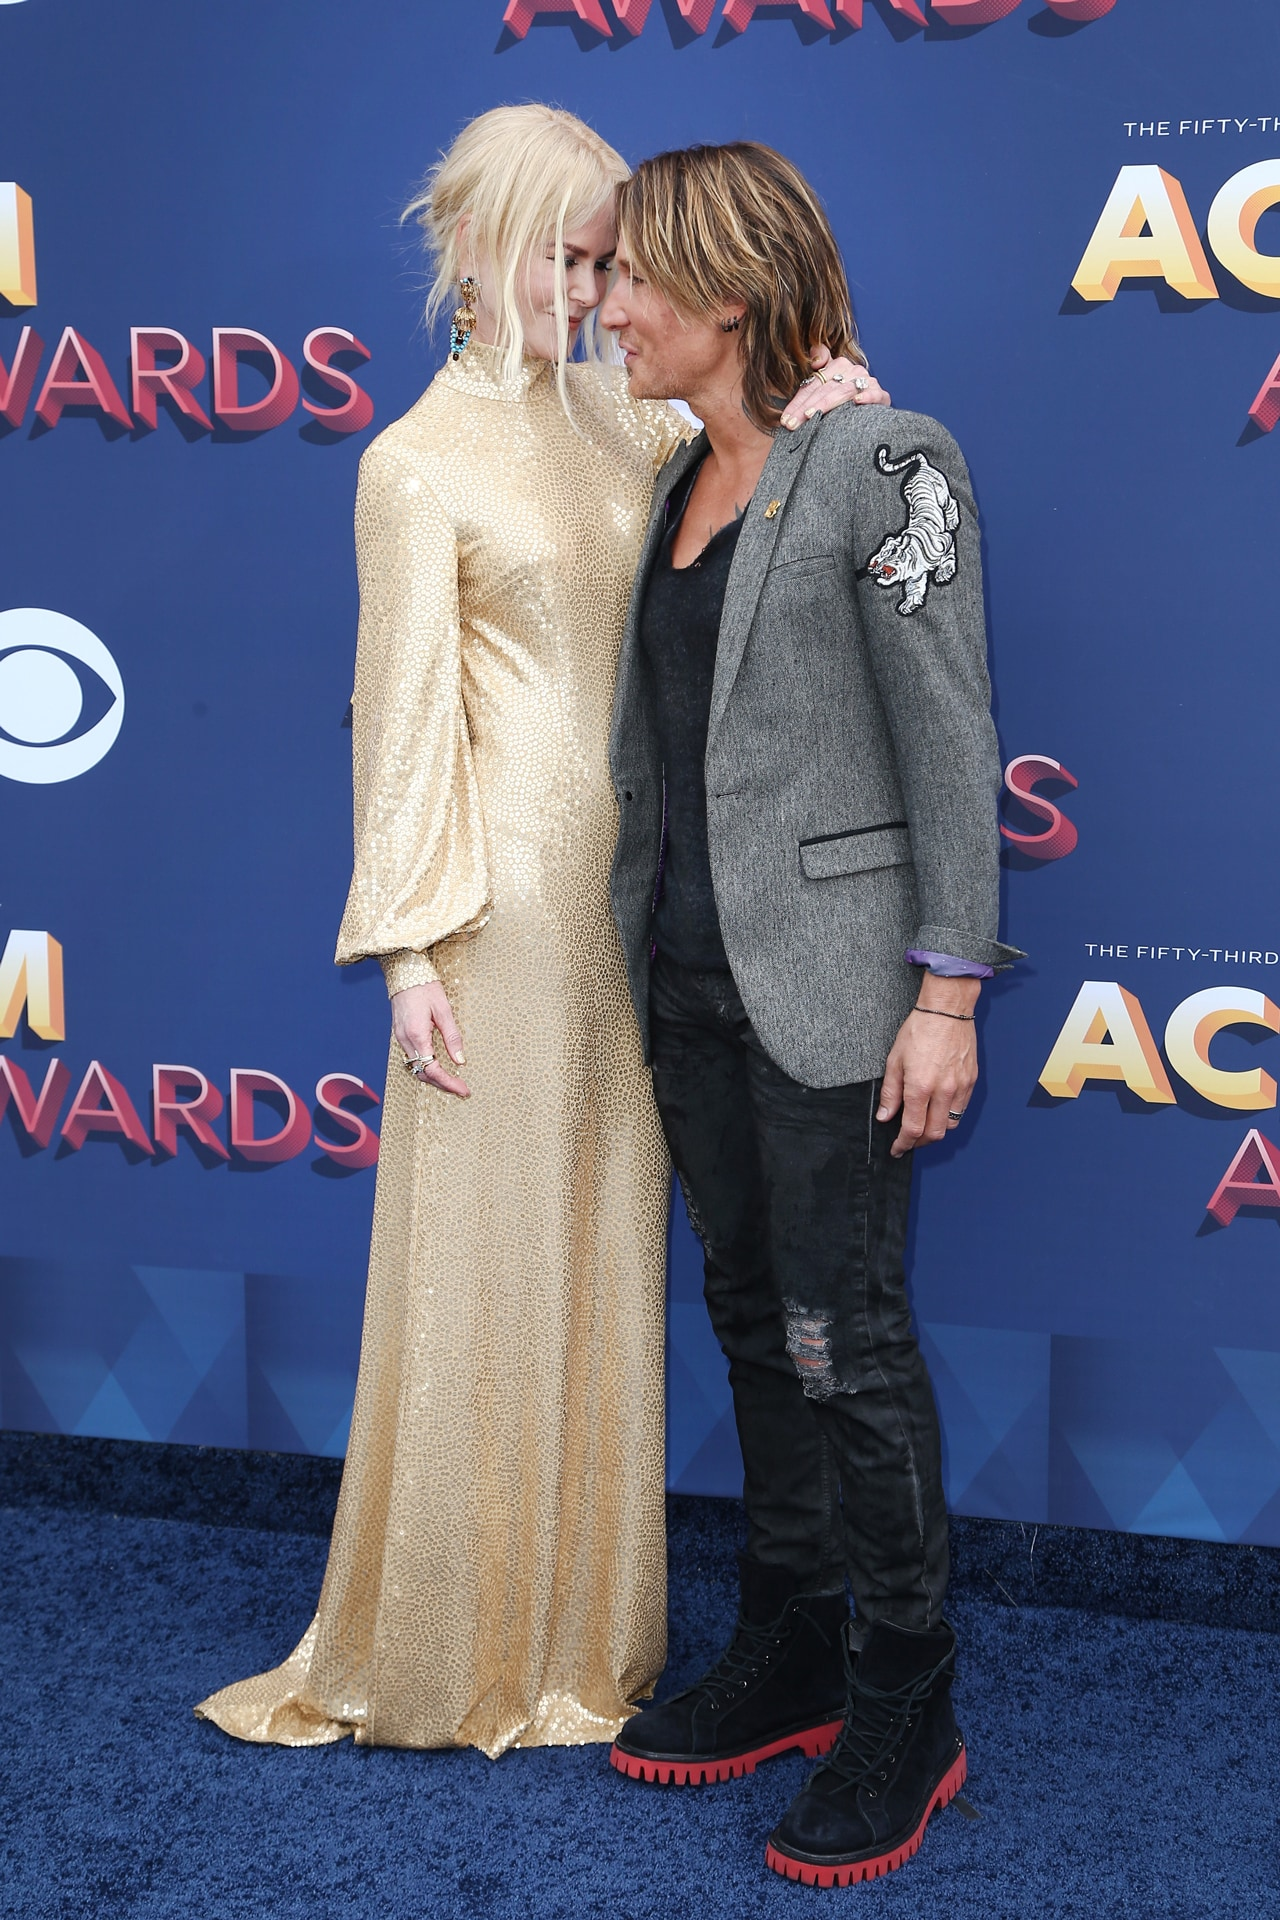 Nicole Kidman and Keith Urban attend the 53rd Academy of Country Music Awards in 2018. Image credit: Tommaso Boddi/Getty Images)